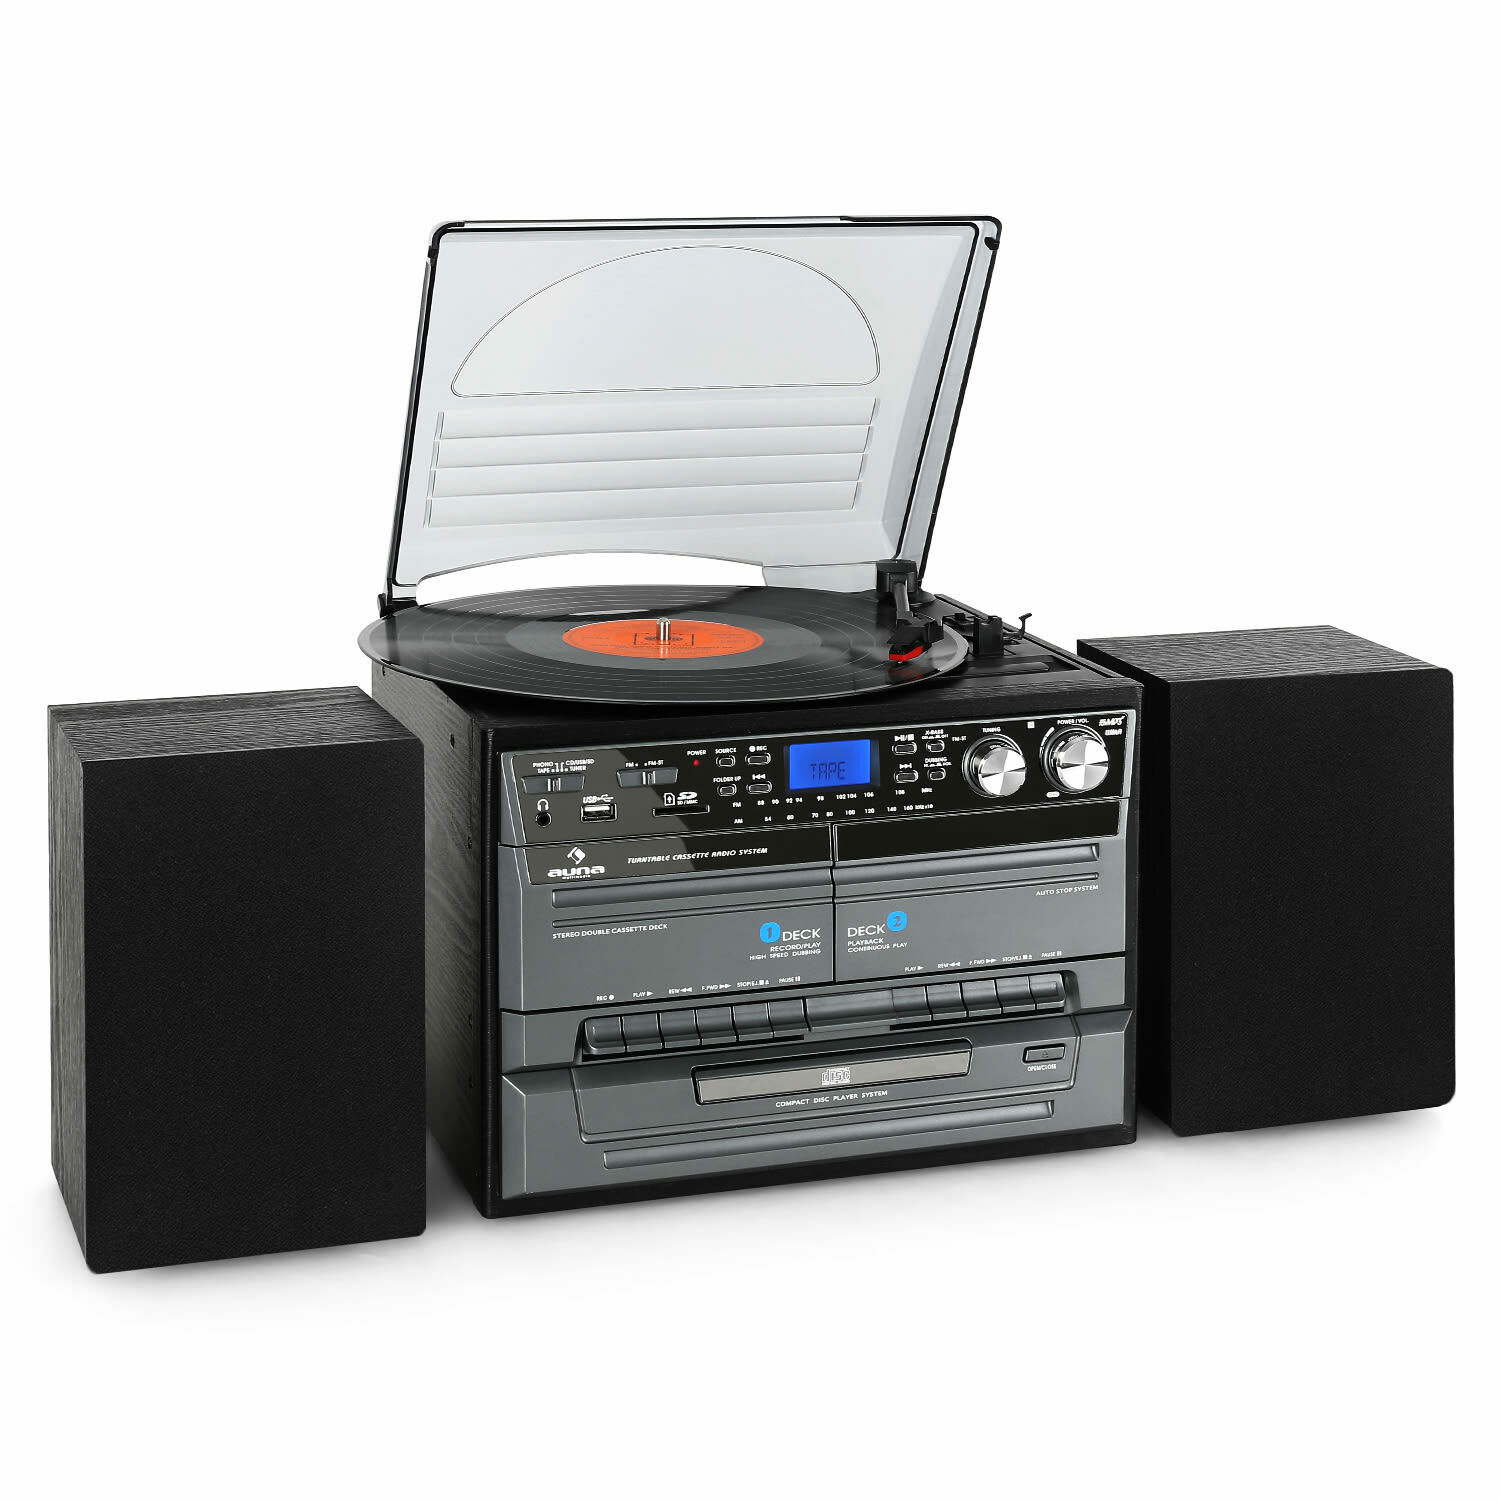 mini chaine stereo hifi cd usb platine stereo k7 encodage mp3 2 enceintes bois eur 164 99. Black Bedroom Furniture Sets. Home Design Ideas